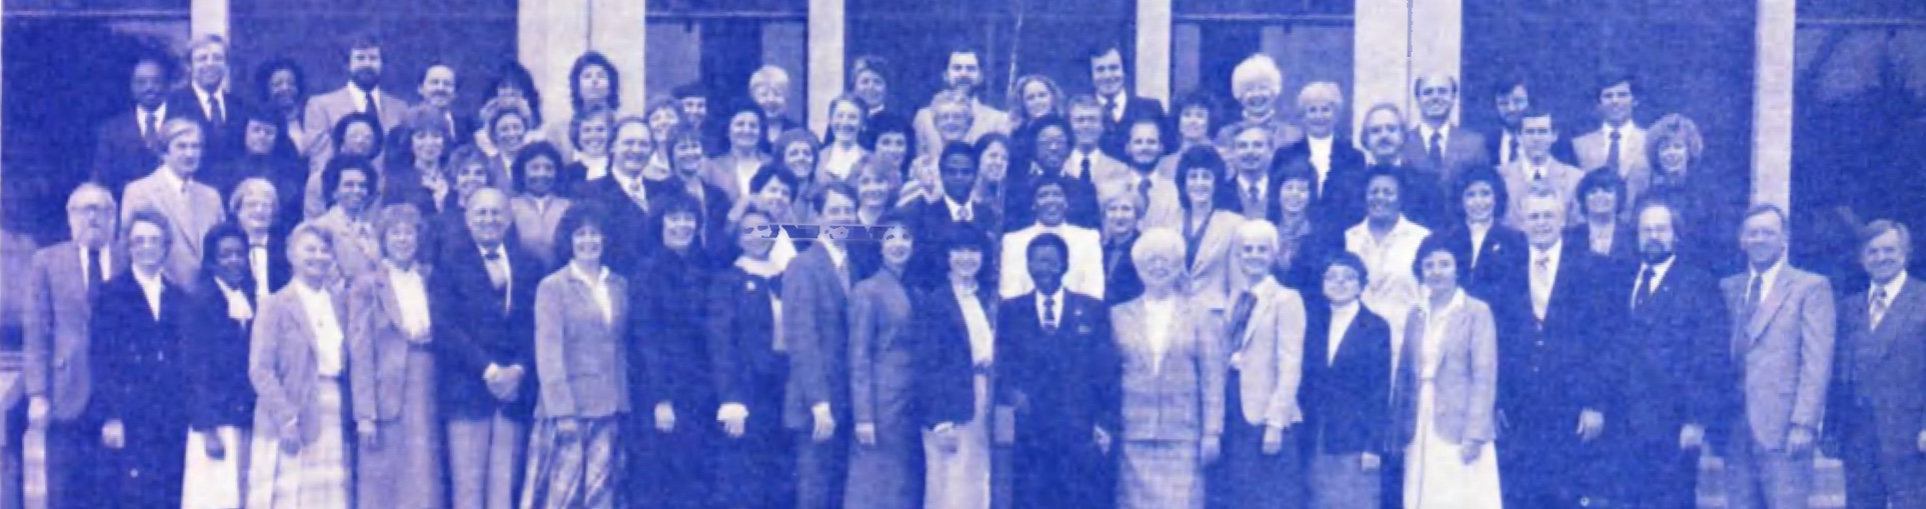 Unity Ministerial Faculty and Students 1984